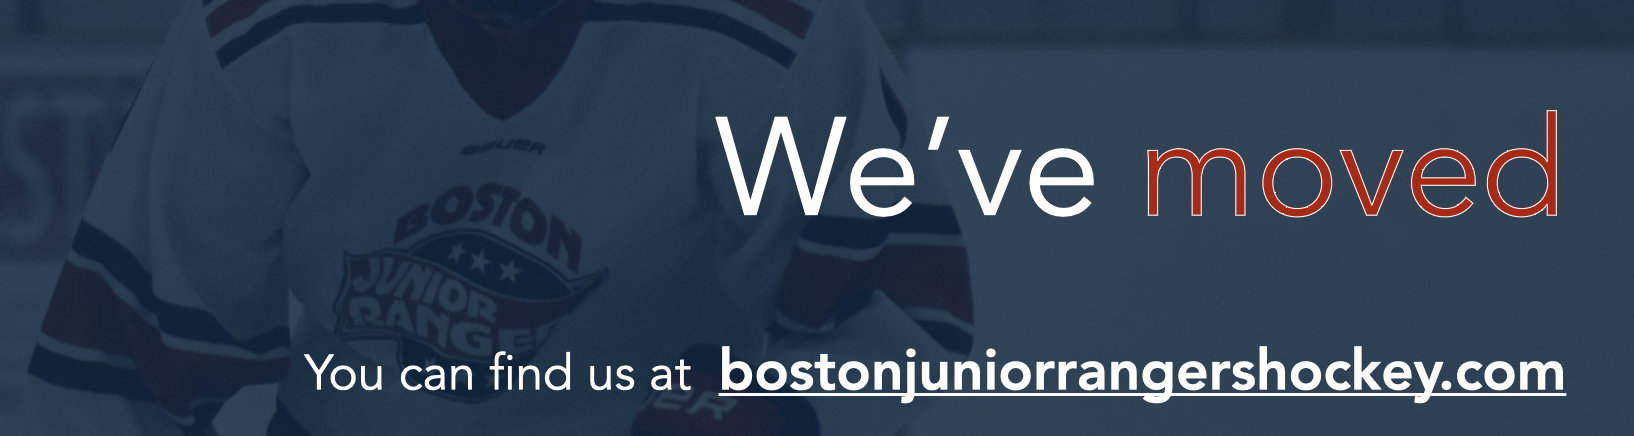 Boston Junior Rangers - Youth, Hockey, Goal, Breakaway Ice Rink